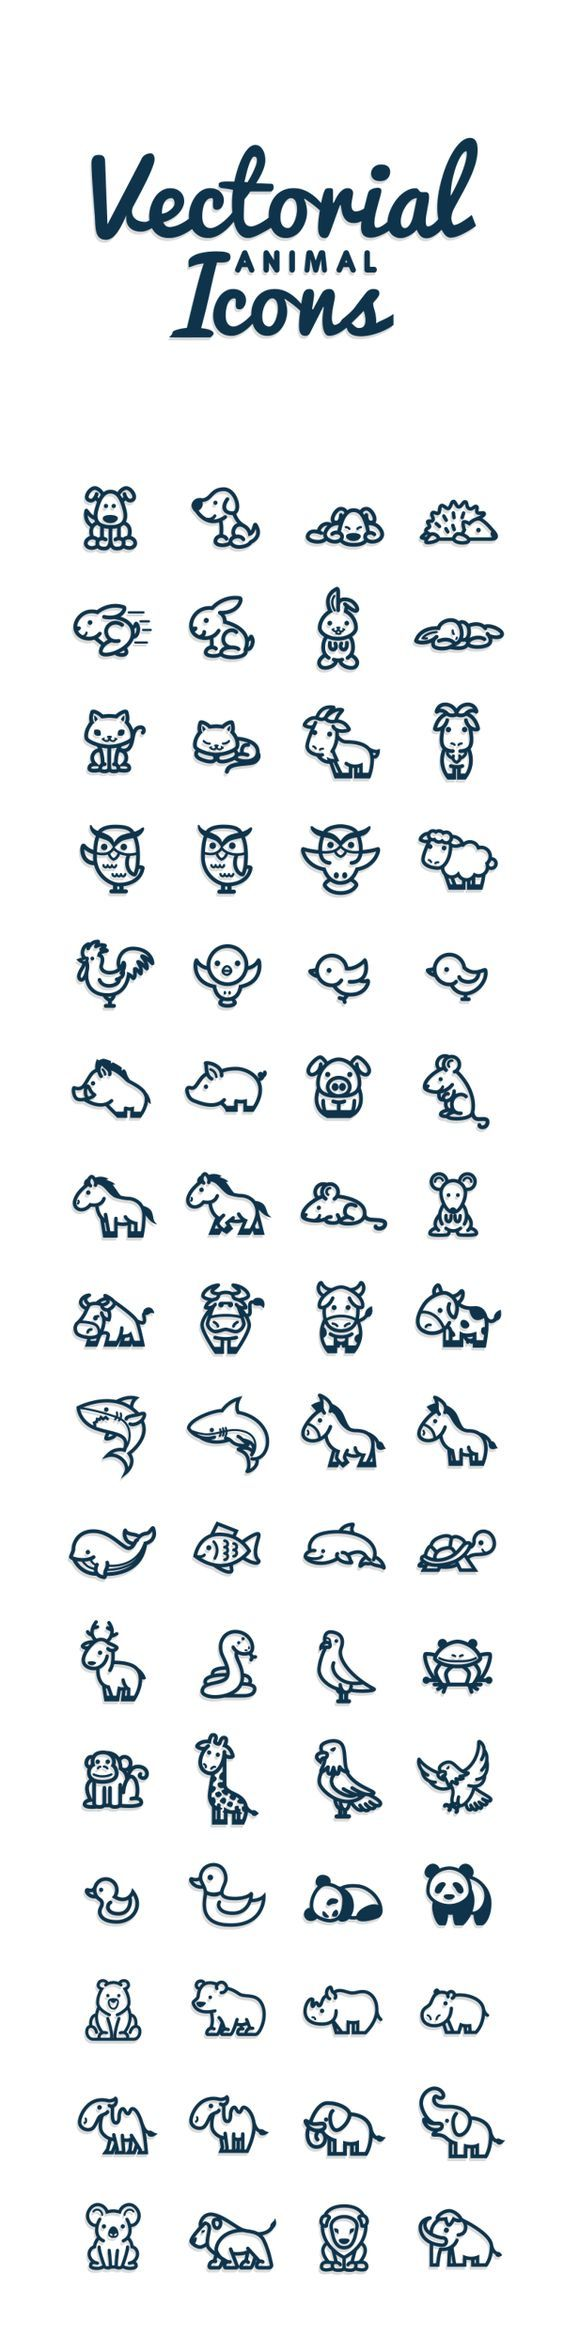 Vectorial Animals by Bodea Daniel, via Behance // Petits animaux divers : chien, hérisson, lapin, chat, chèvre, hibou, mouton, coq, oiseau, sanglier, cochon, cheval, souris, vache, requin, âne, baleine, poisson, dauphin, tortue, renne, serpent, pigeon, mouette, grenouille, singe, girafe, aigle, canard, panda, ours, rhinocéros, hippopotame, chameau, éléphant, koala, lion, mammouth: